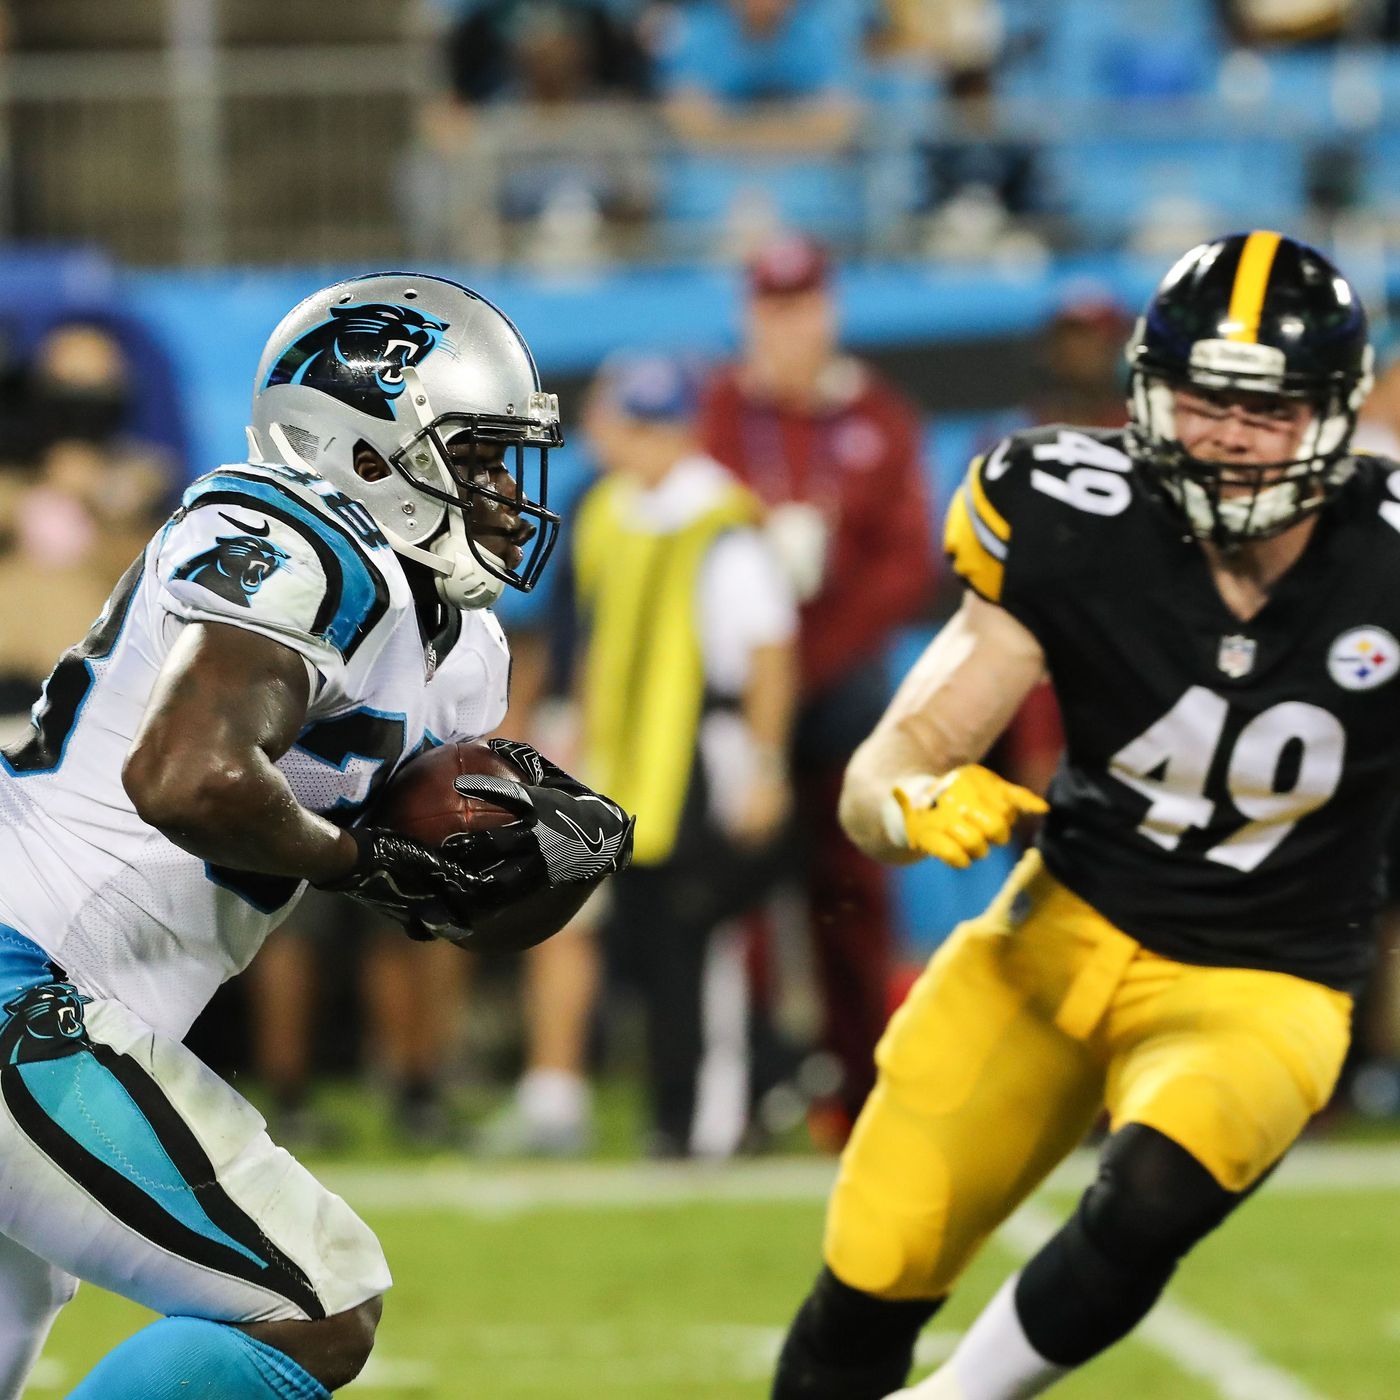 Panthers 24 Steelers 39  Panthers fall short in preseason finale in  Pittsburgh 52b3012fe